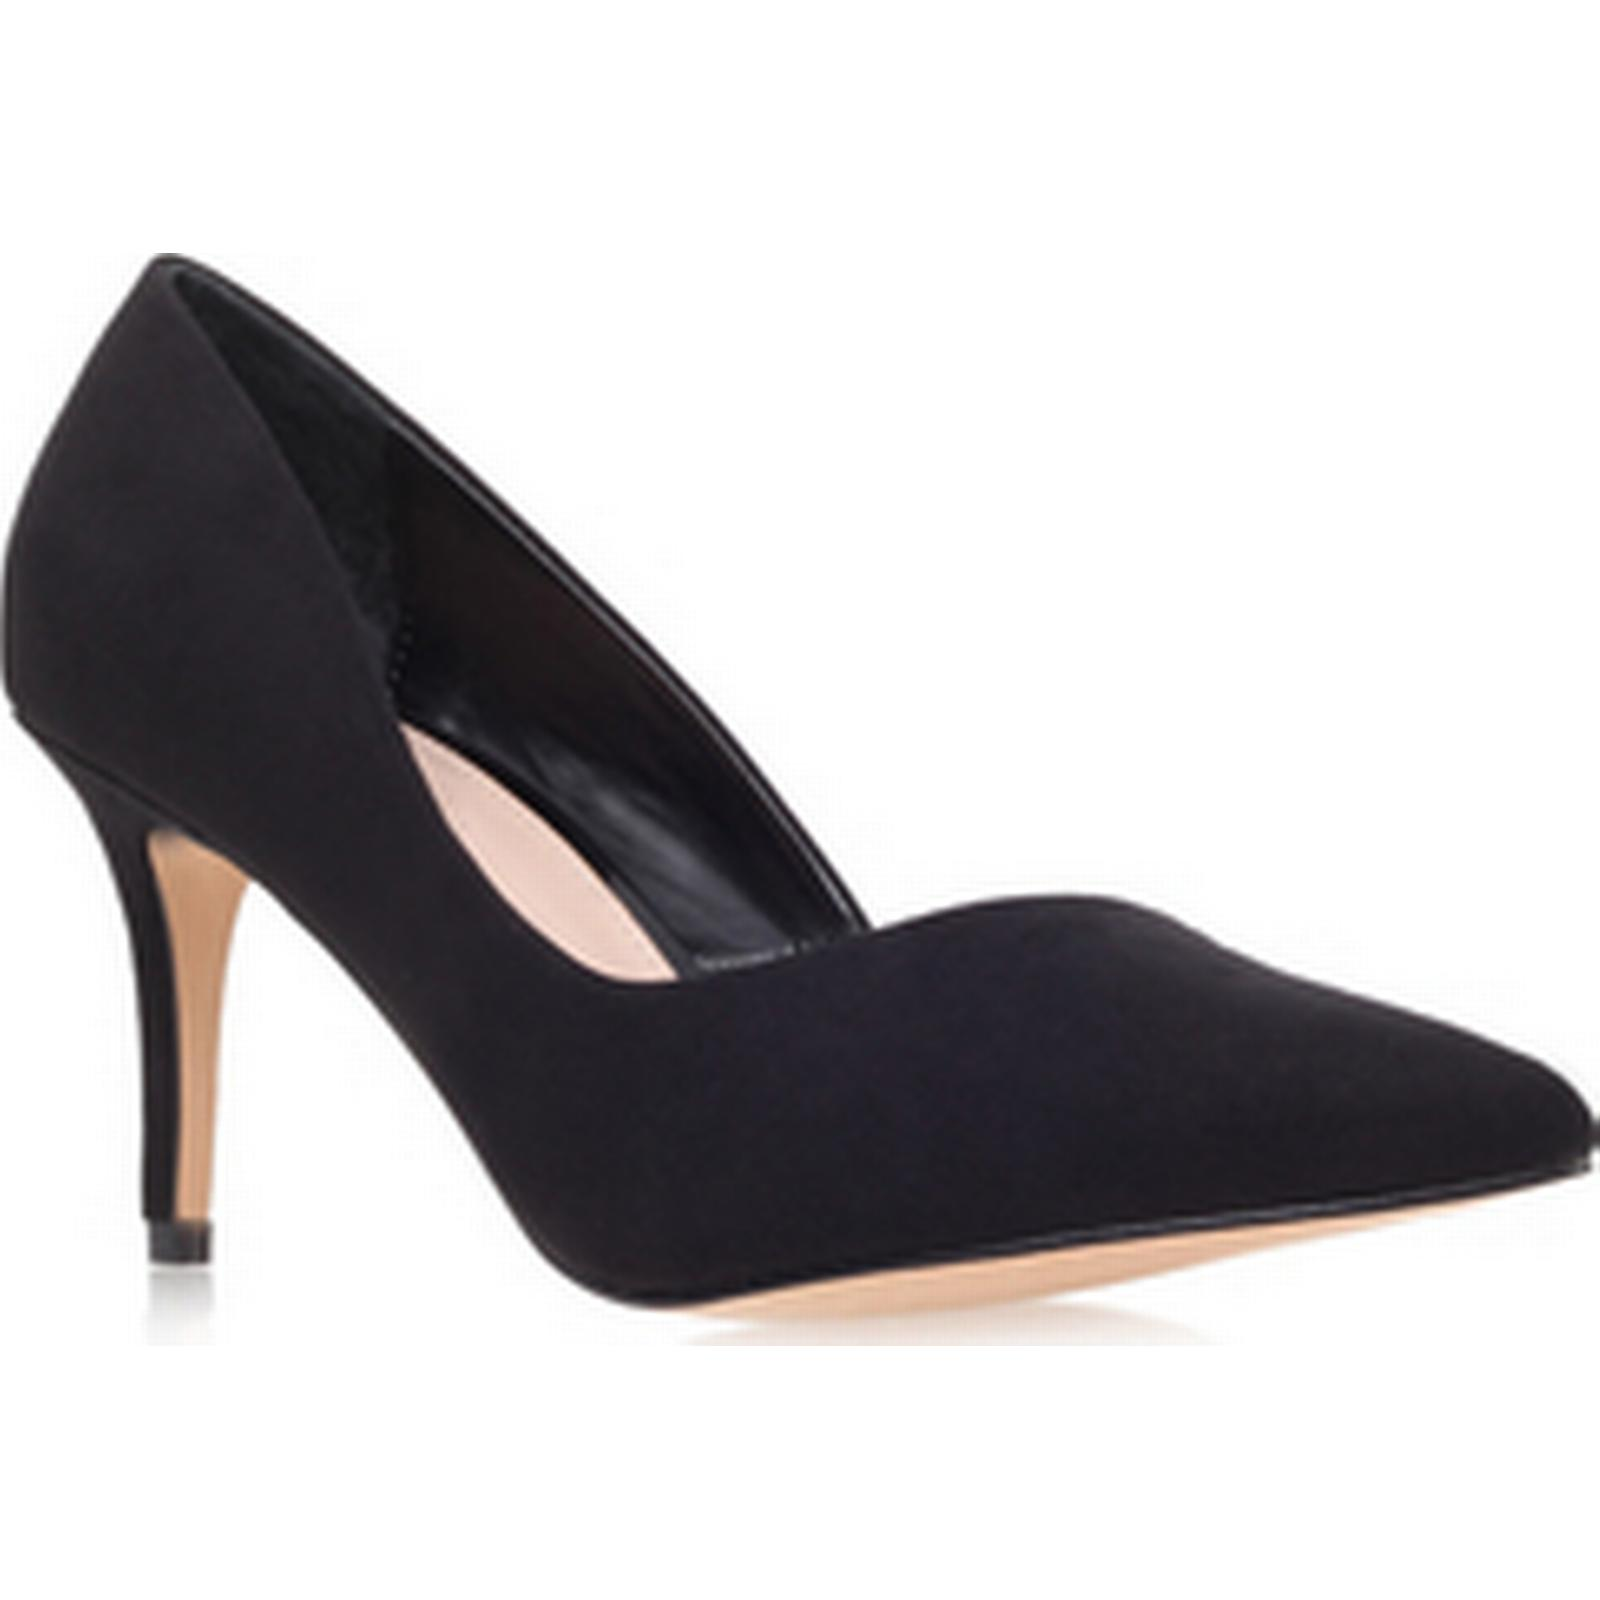 Gentlemen/Ladies - ABYSS CARVELA ABYSS - - To welcome 4685bf